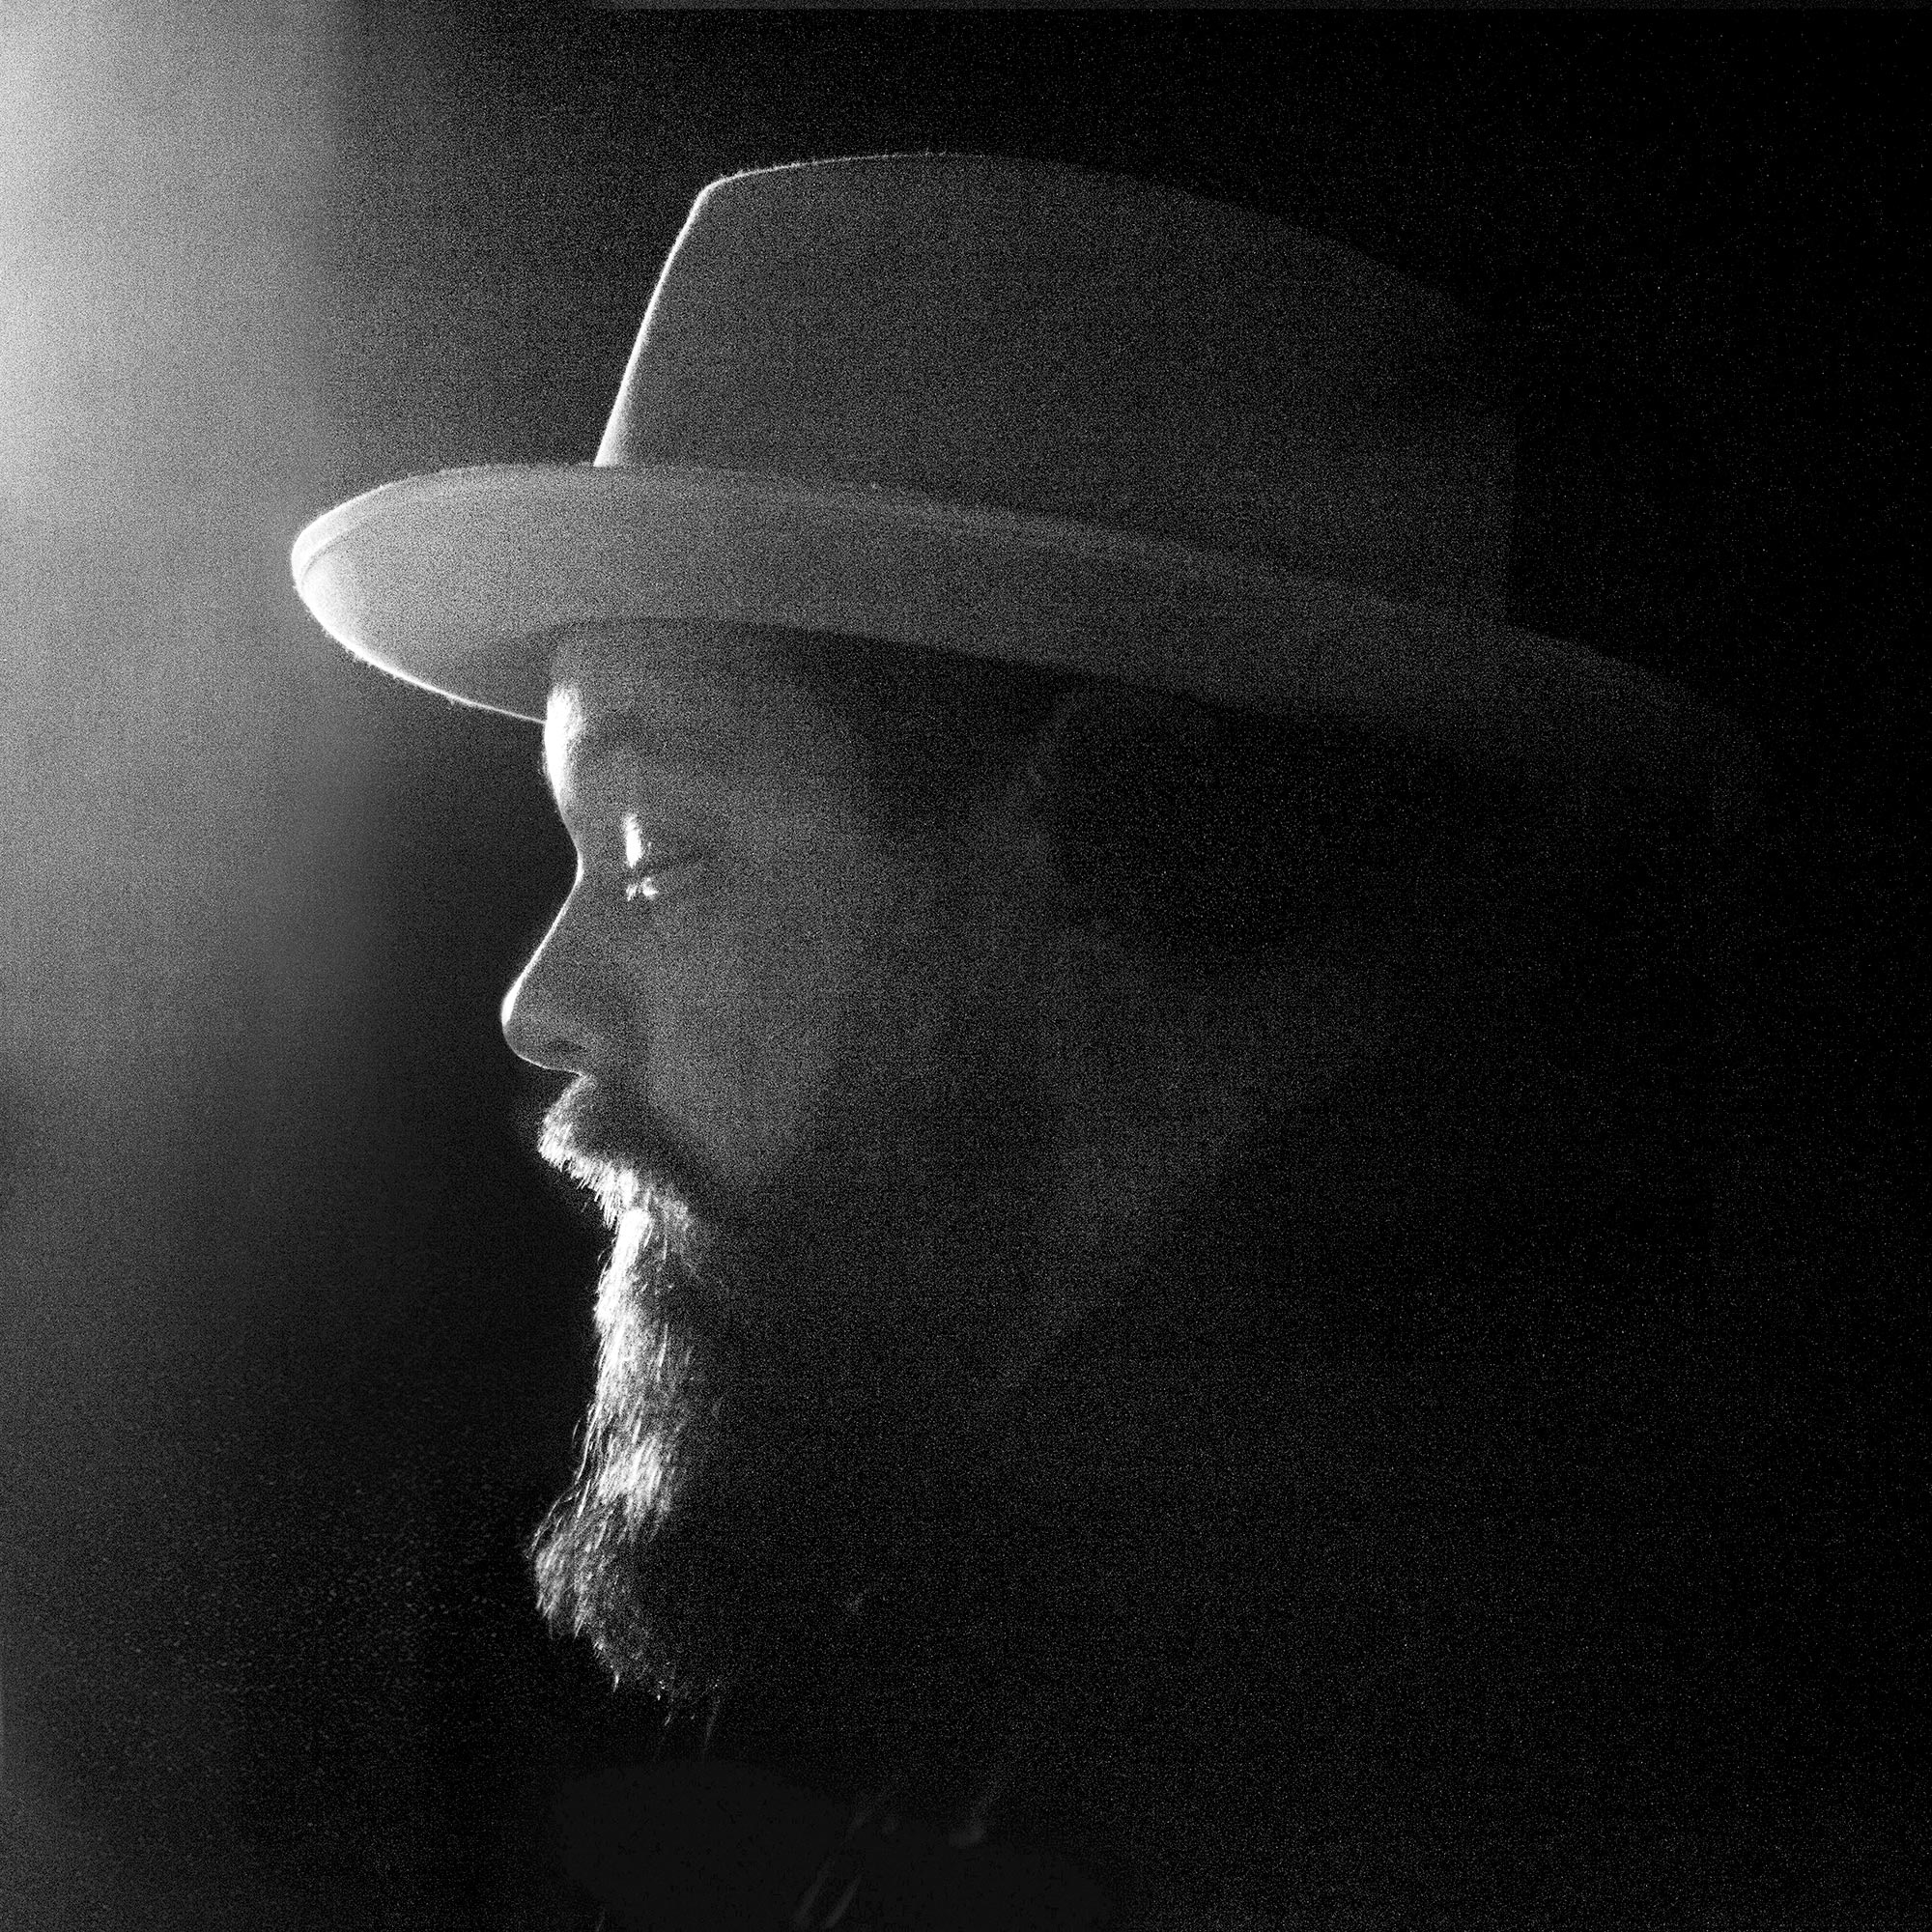 Tearing of the Seams  by Nathaniel Rateliff and the Night SweatsAlbum